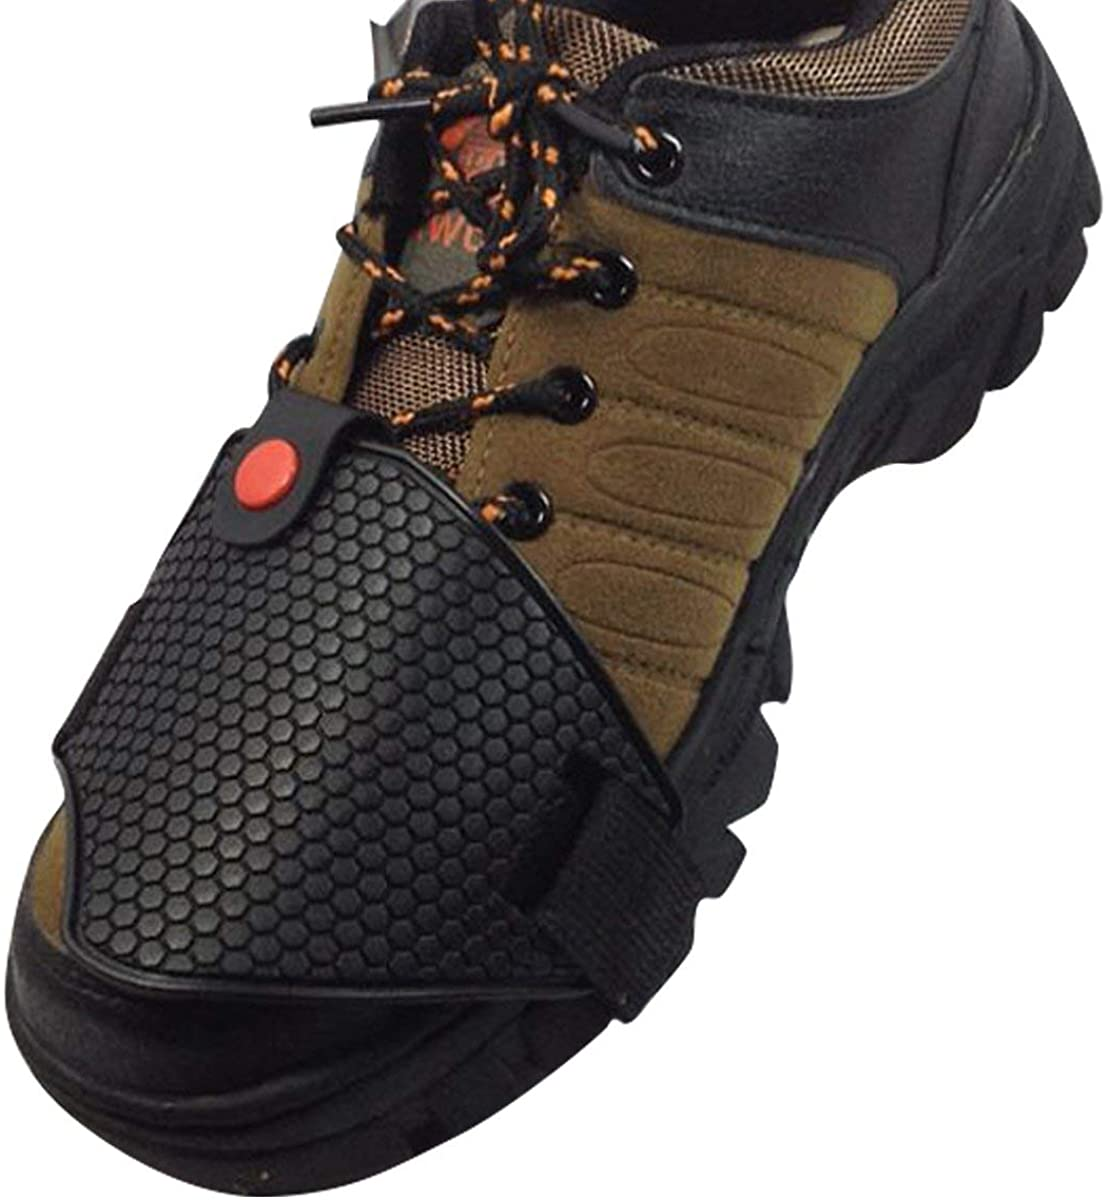 Details about  /Rubber Protective Non-slip Gear Shift Shoe Cover Motorcycle Boots Guard Gear^